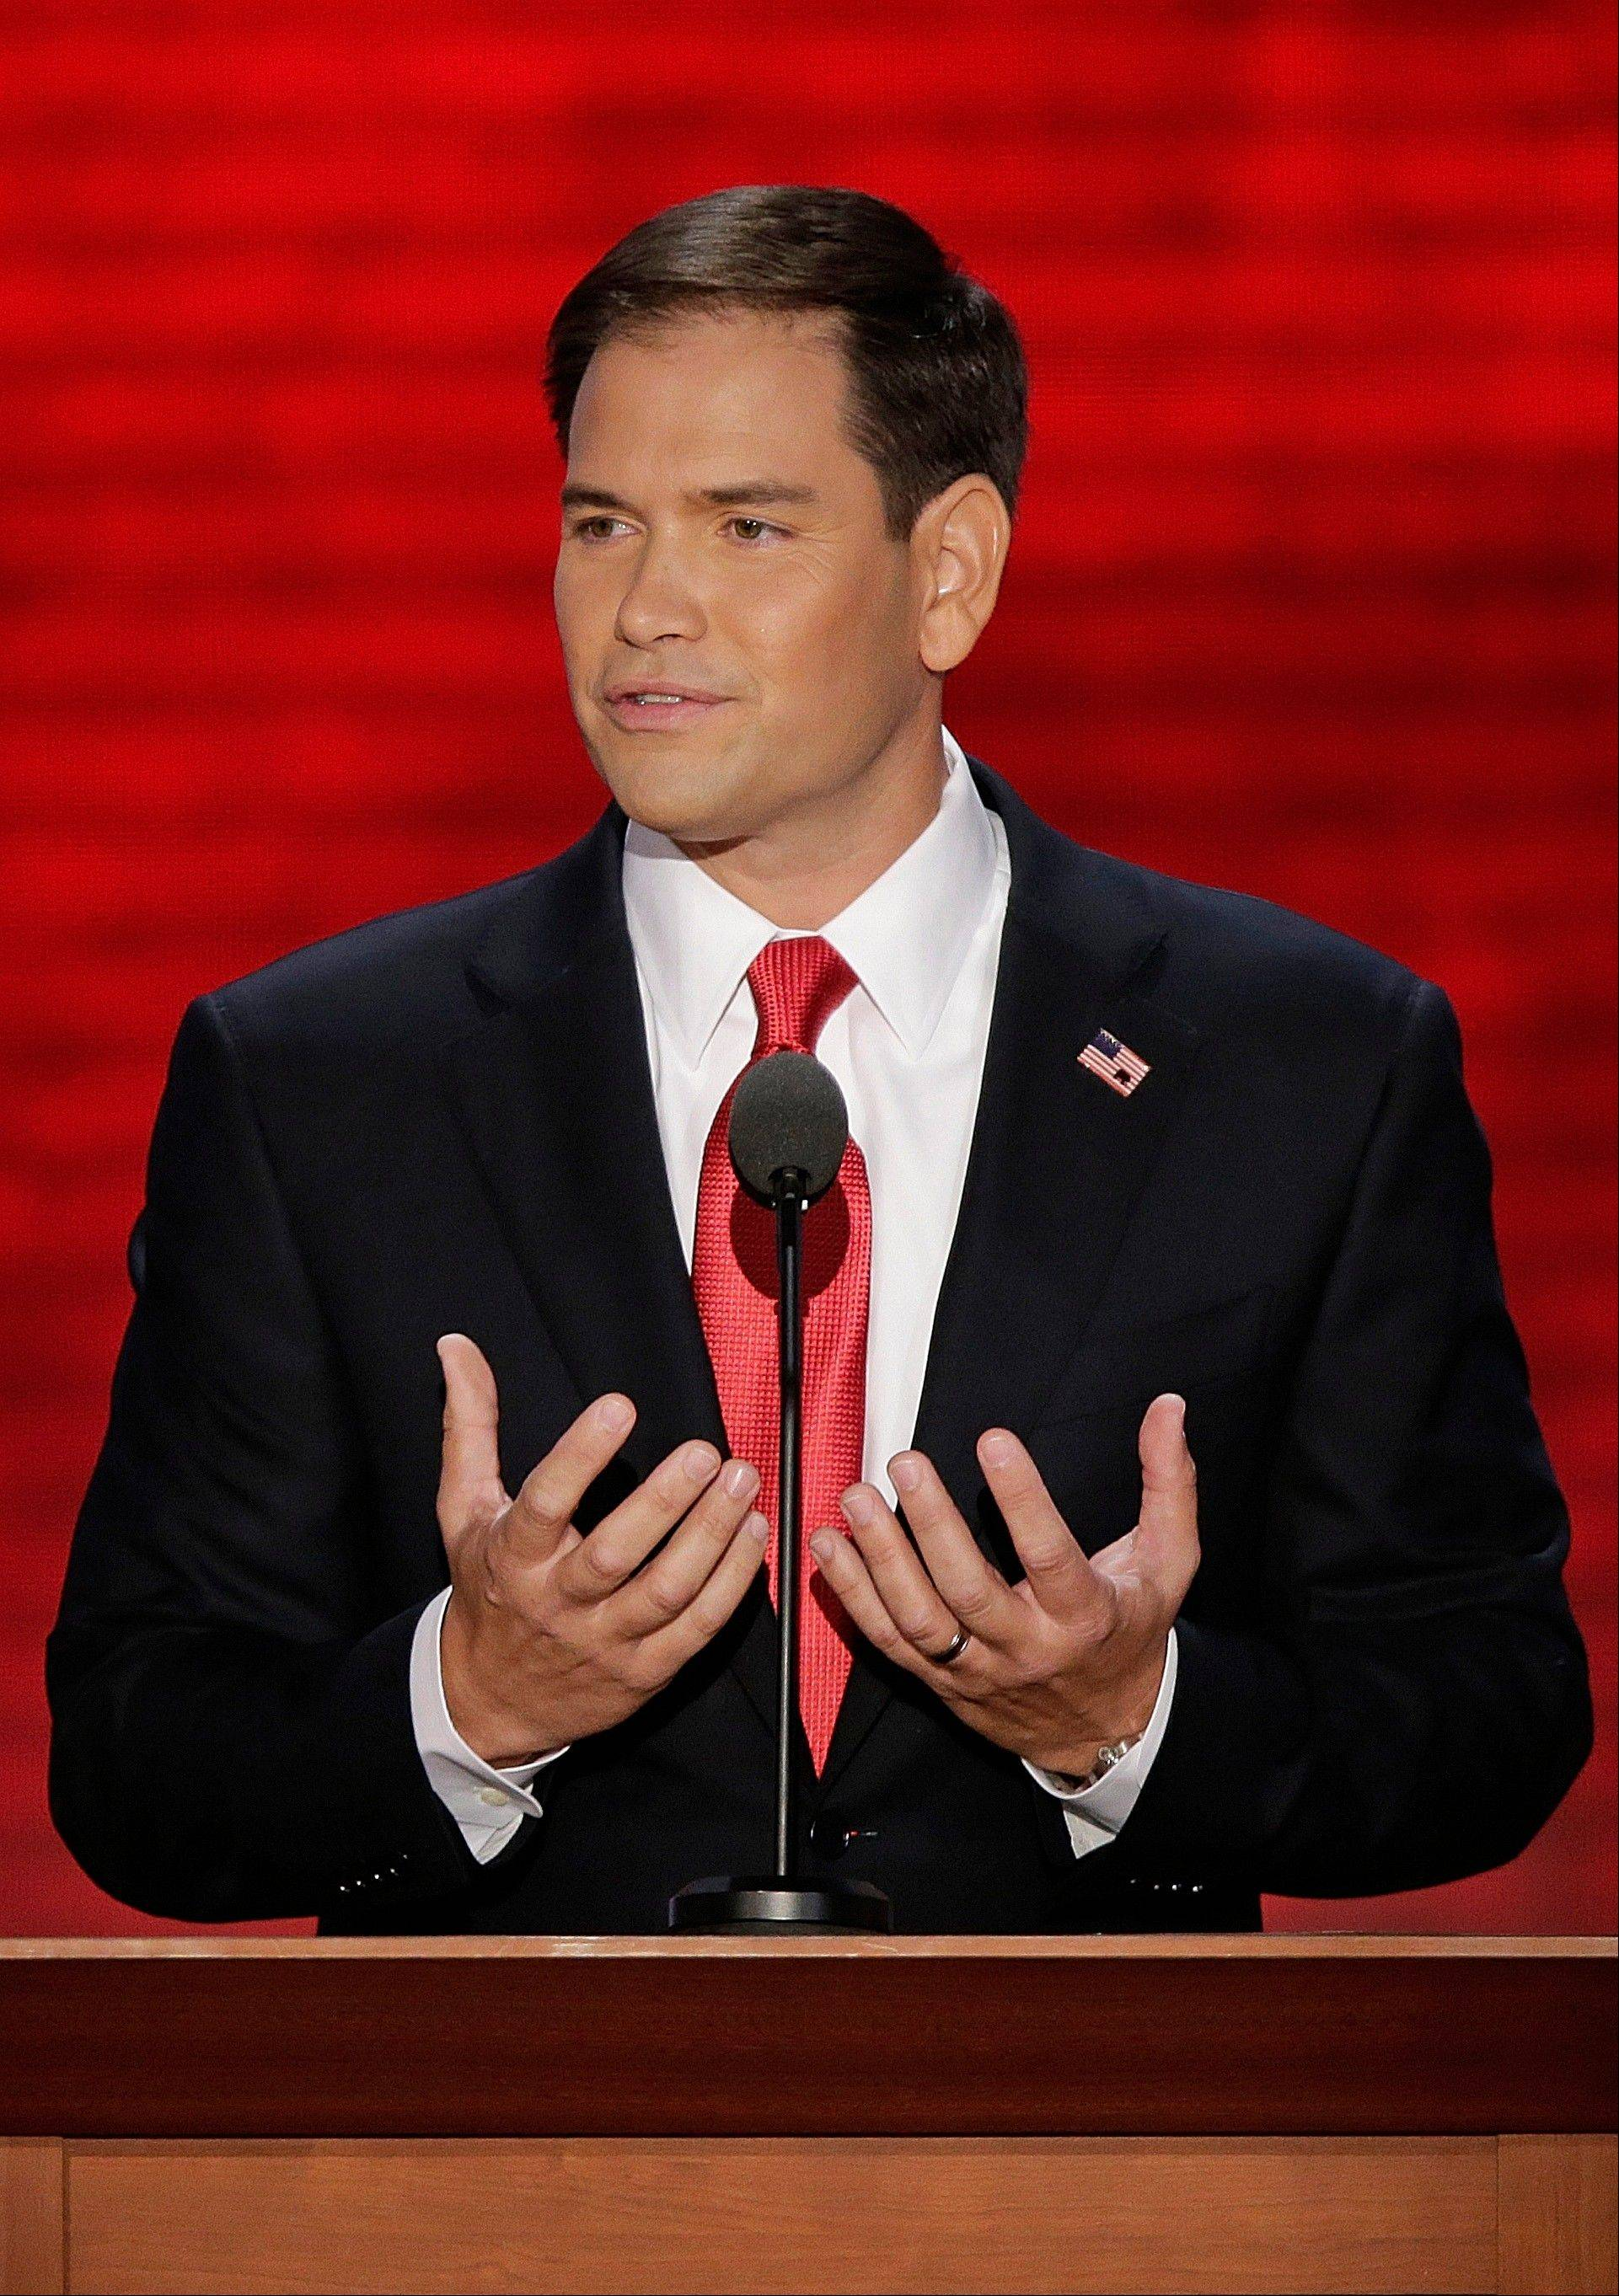 Florida Senator Marco Rubio addresses the Republican National Convention in Tampa, Fla., on Thursday, Aug. 30, 2012.